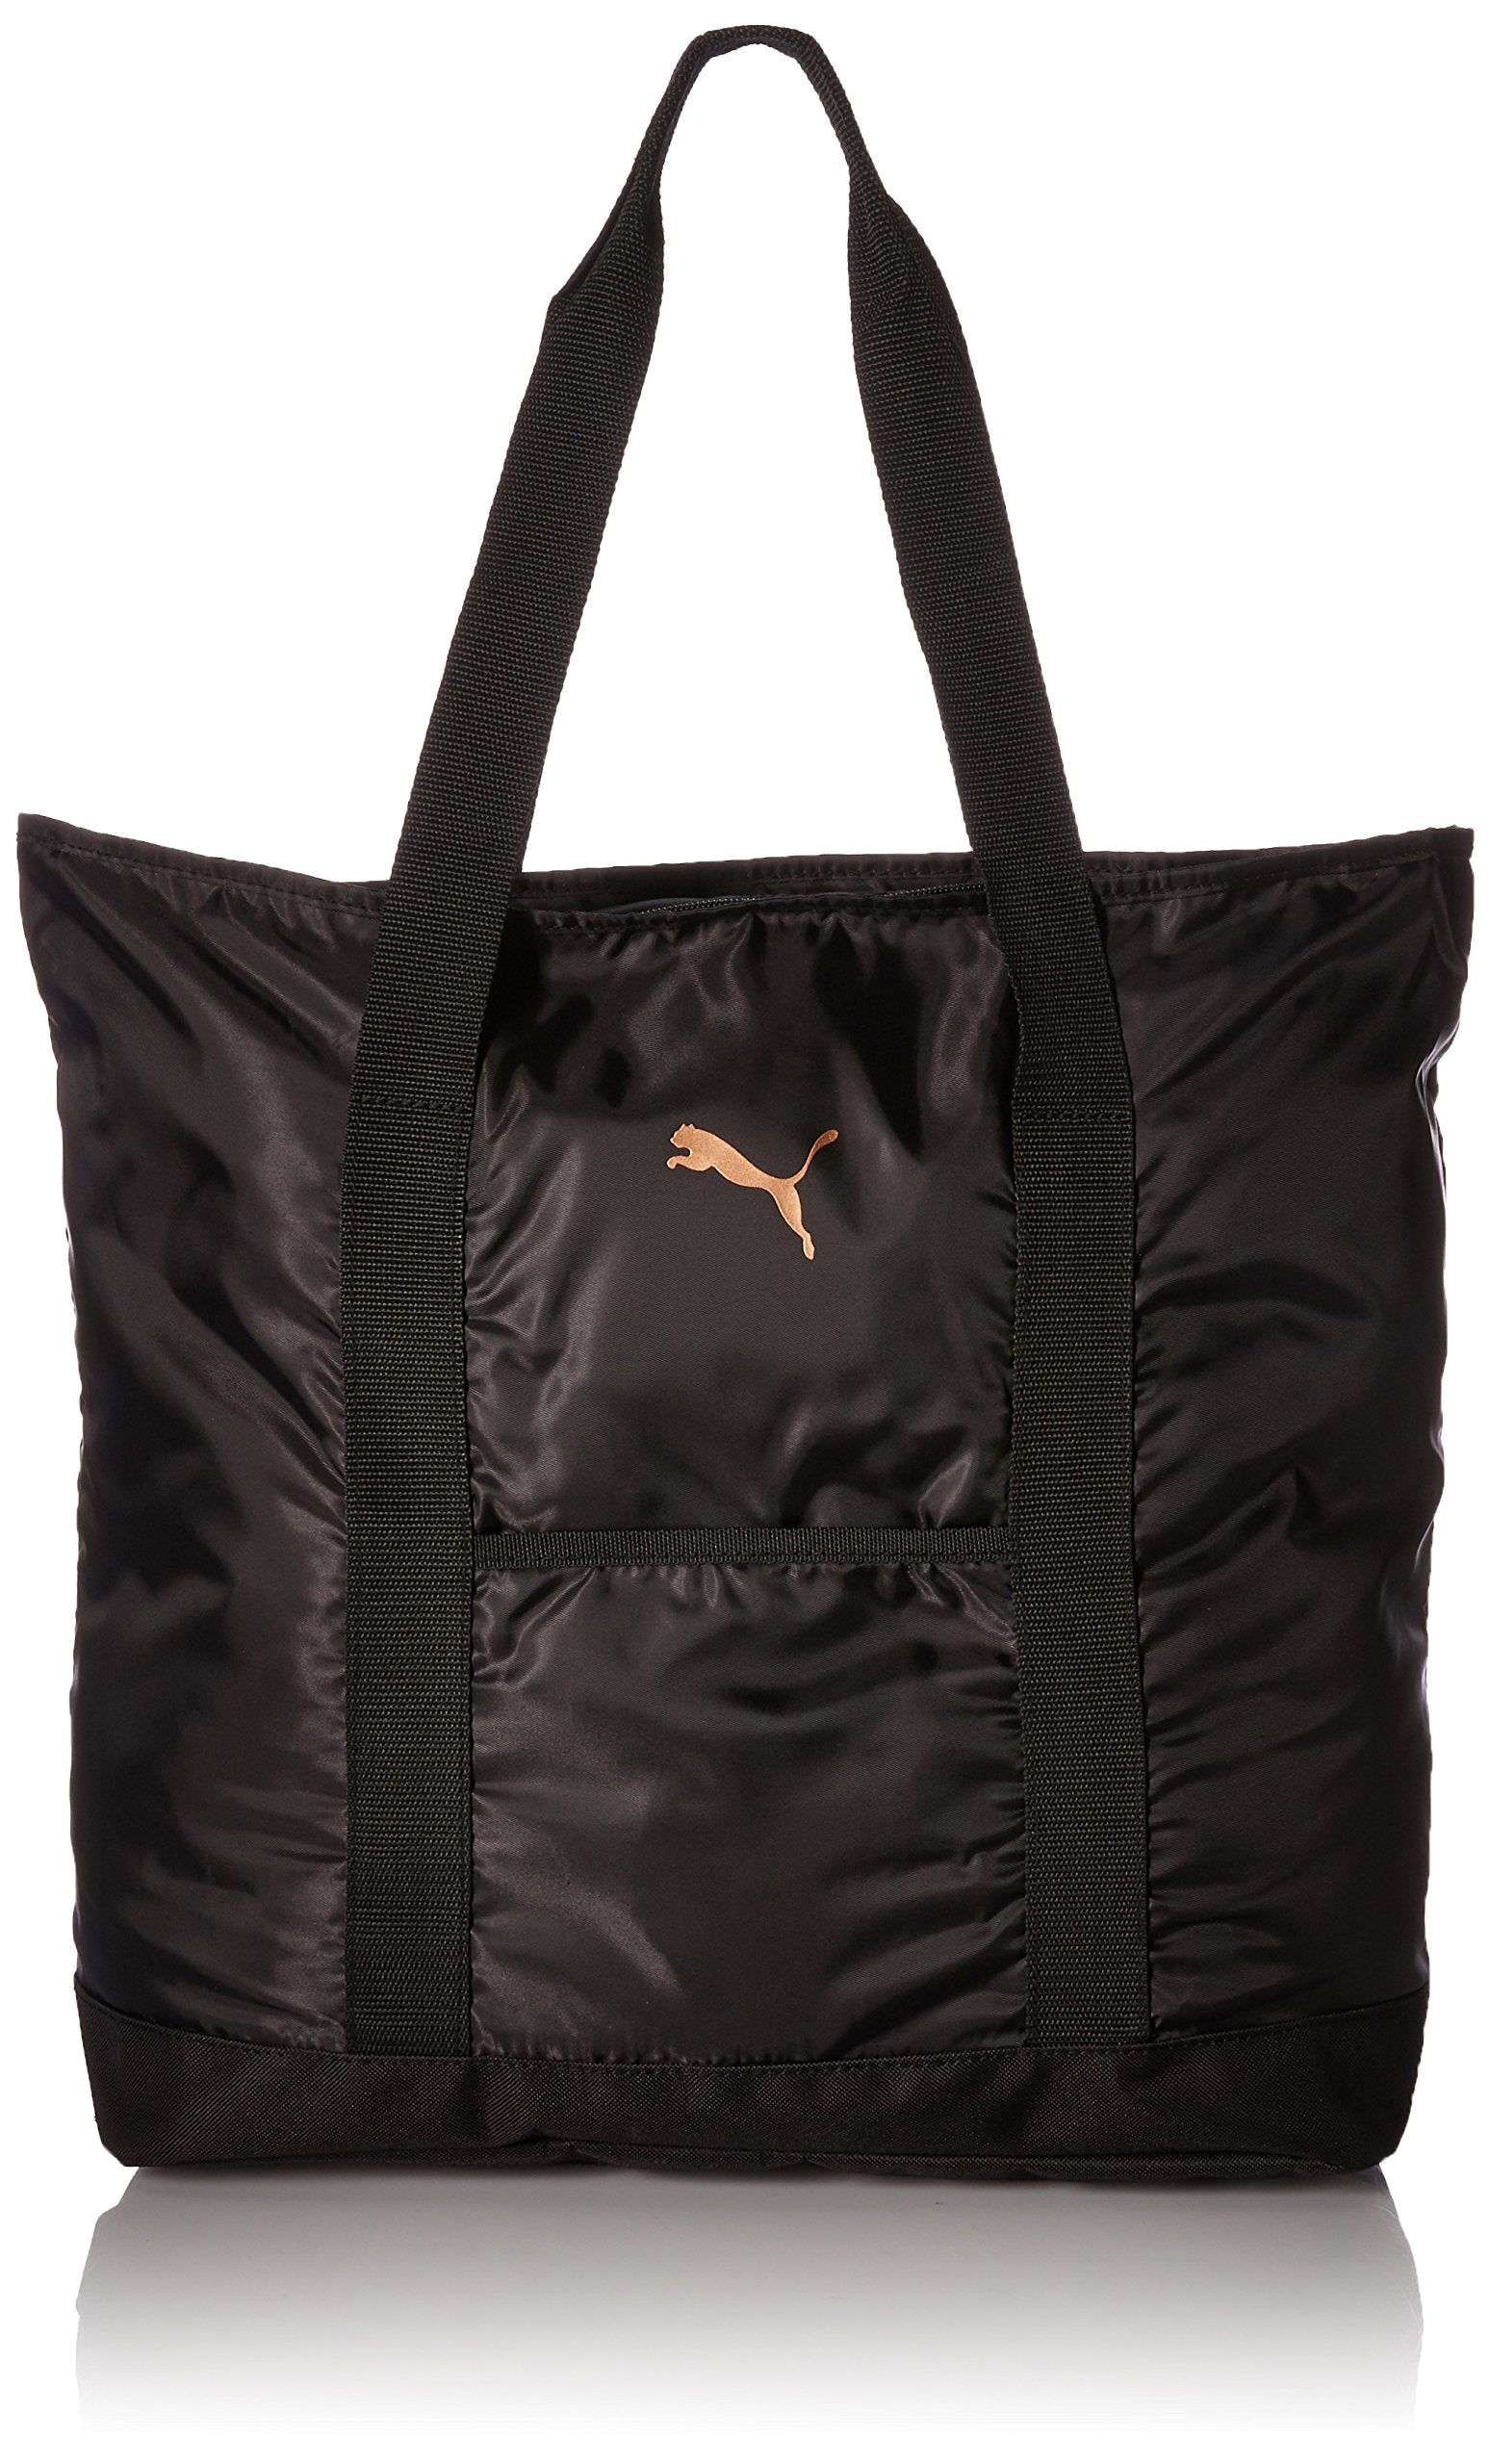 PUMA Women's Evercat Cambridge Tote, black/gold, OS - wiihuu